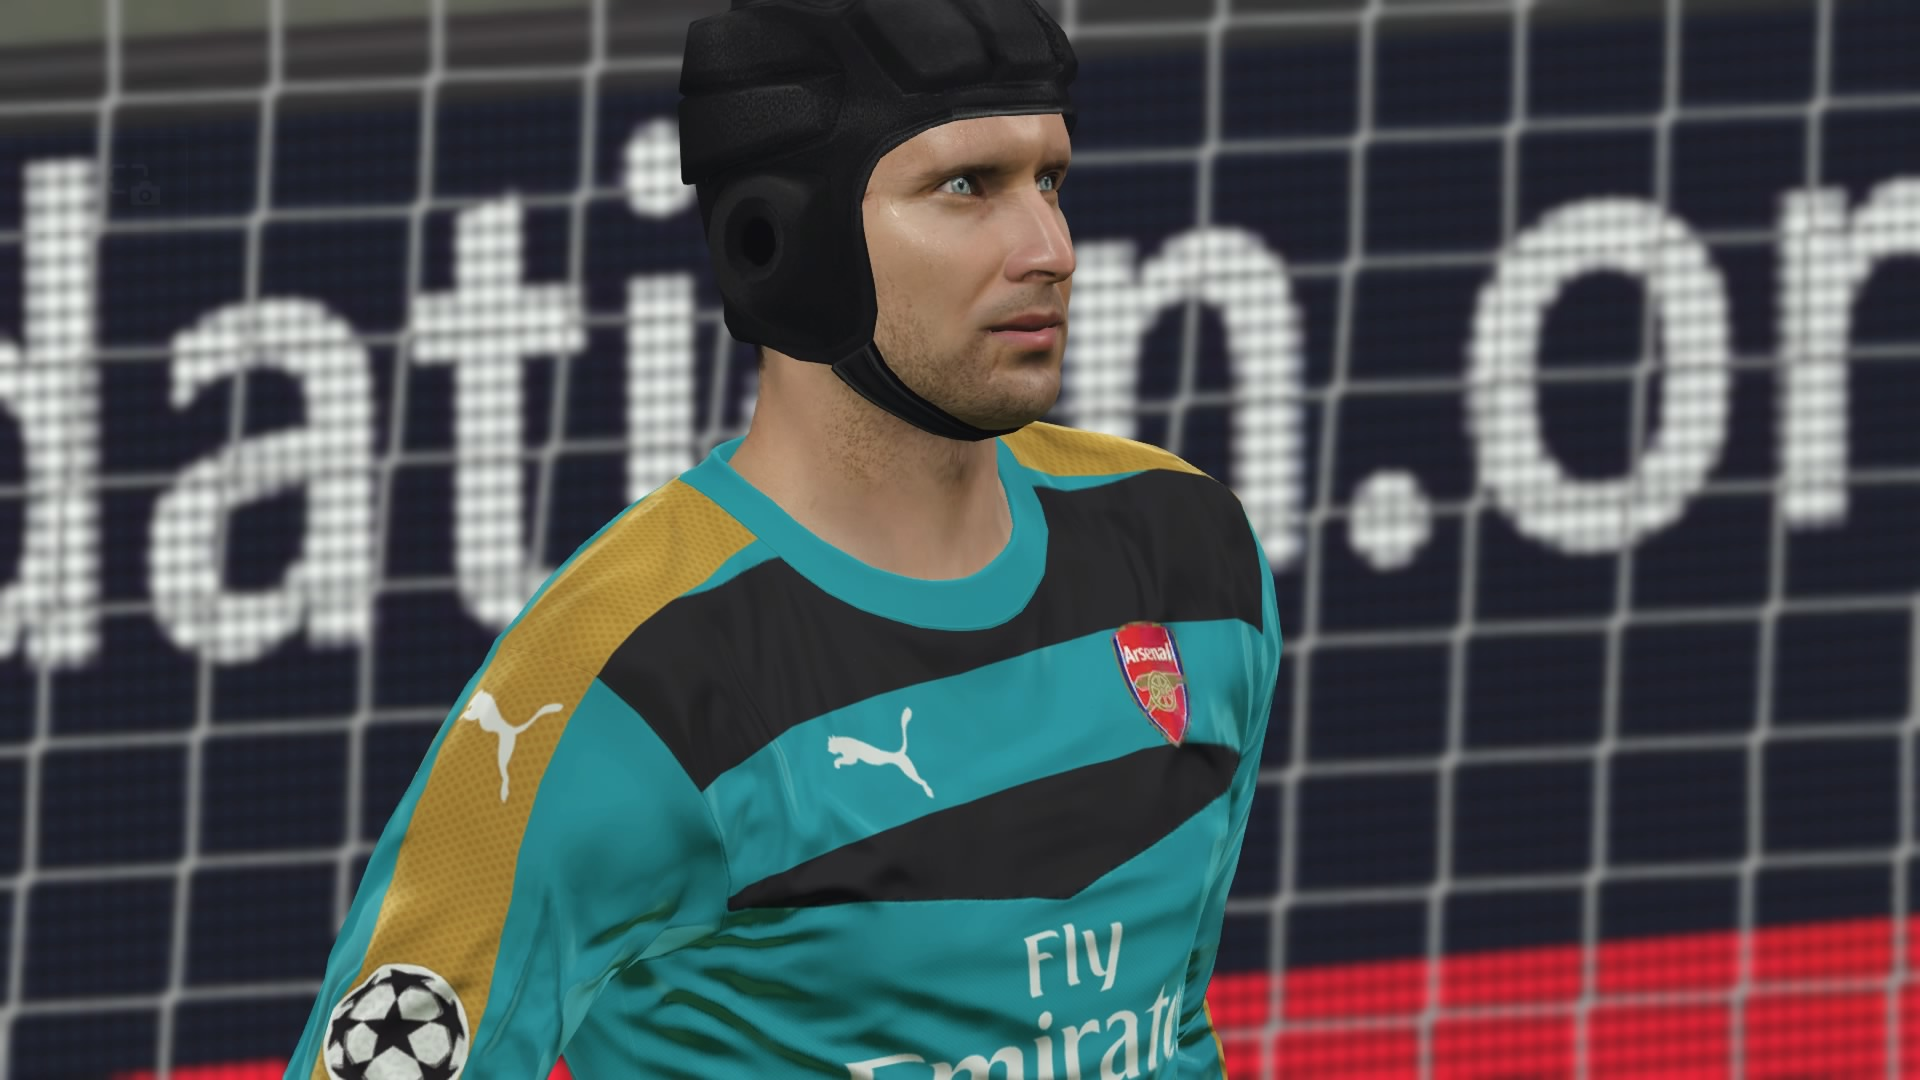 Goalkeeper Controls - PES 2017